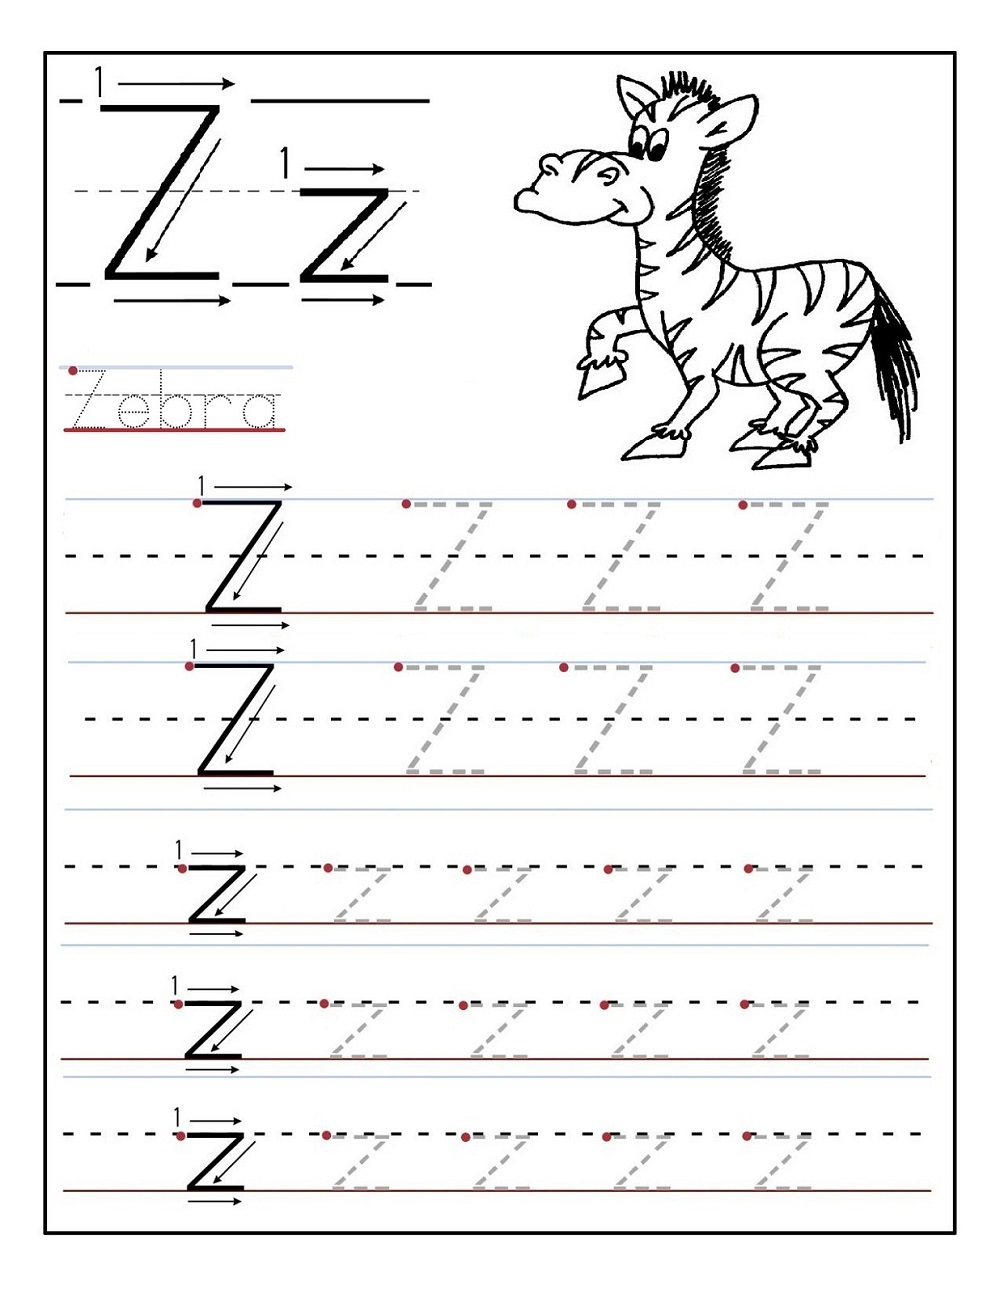 tracing-worksheets-3-year-old-page